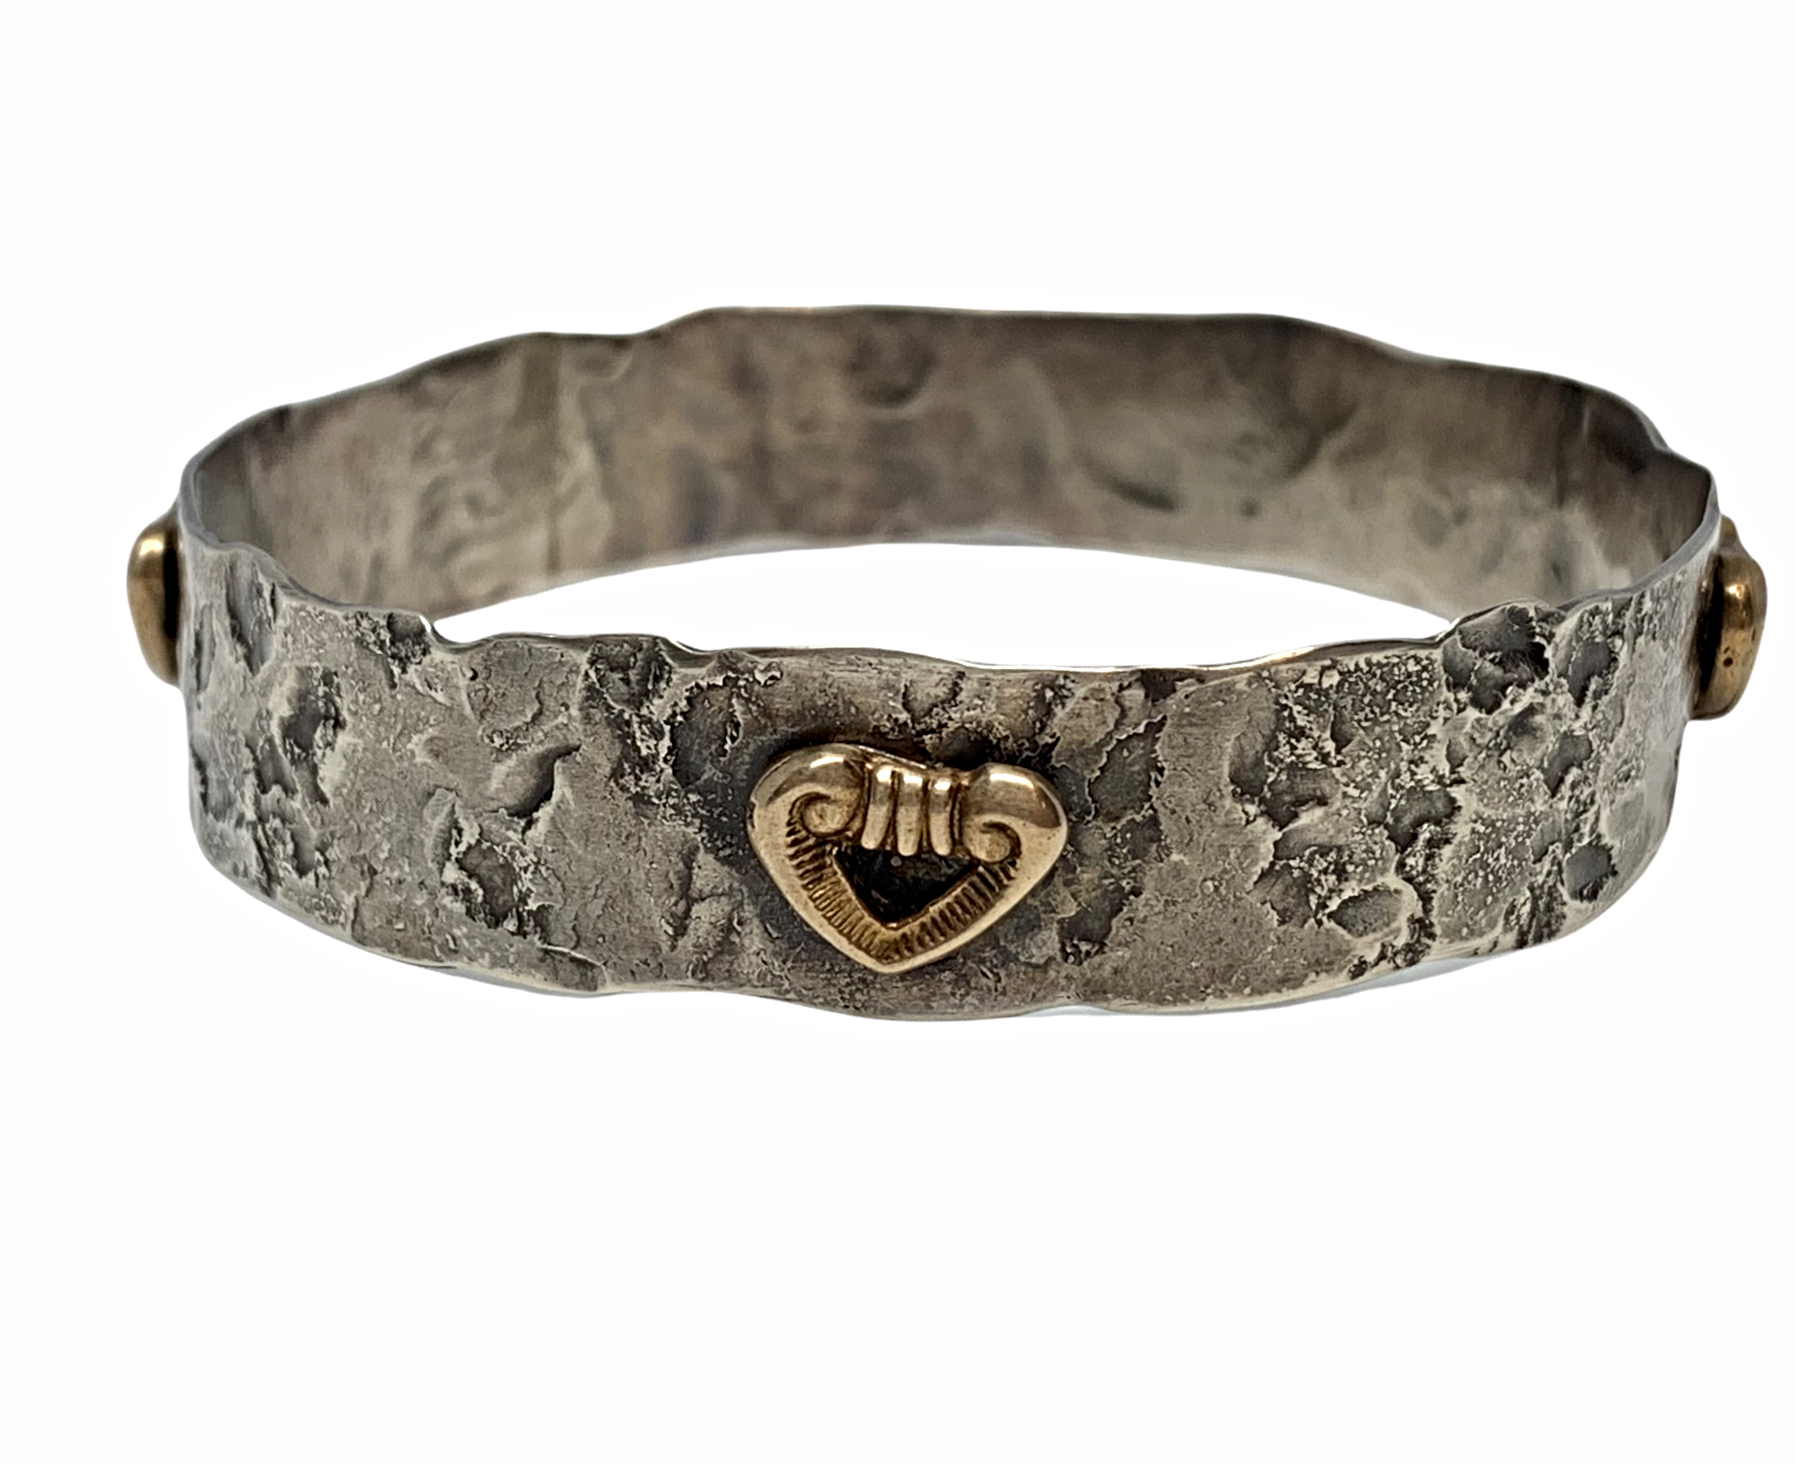 Handmade sterling silver and bronze heart bangle by Karyn Chopik   Effusion Art Gallery + Cast Glass Studio, Invermere BC